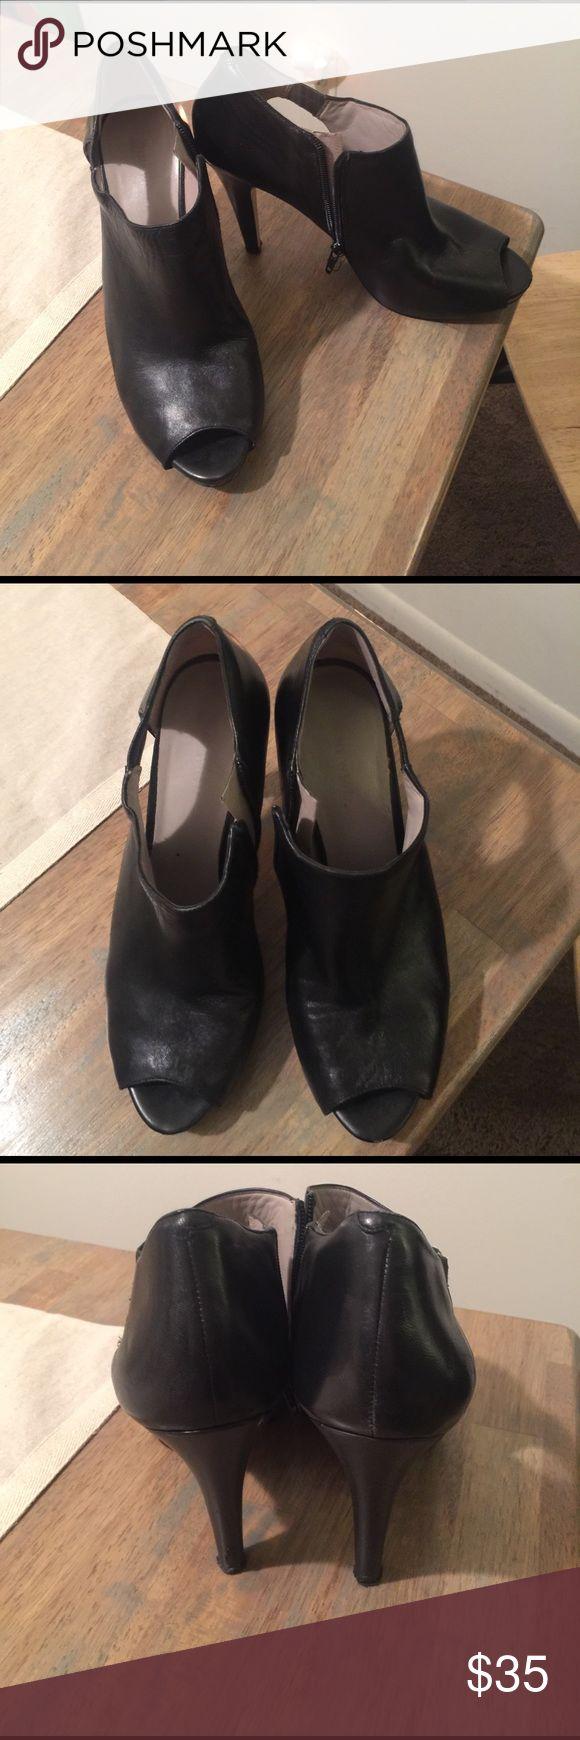 Nine West Heels Nine West Heels! Perfect for a fun night on the town or with some skinny jeans! Nine West Shoes Heels